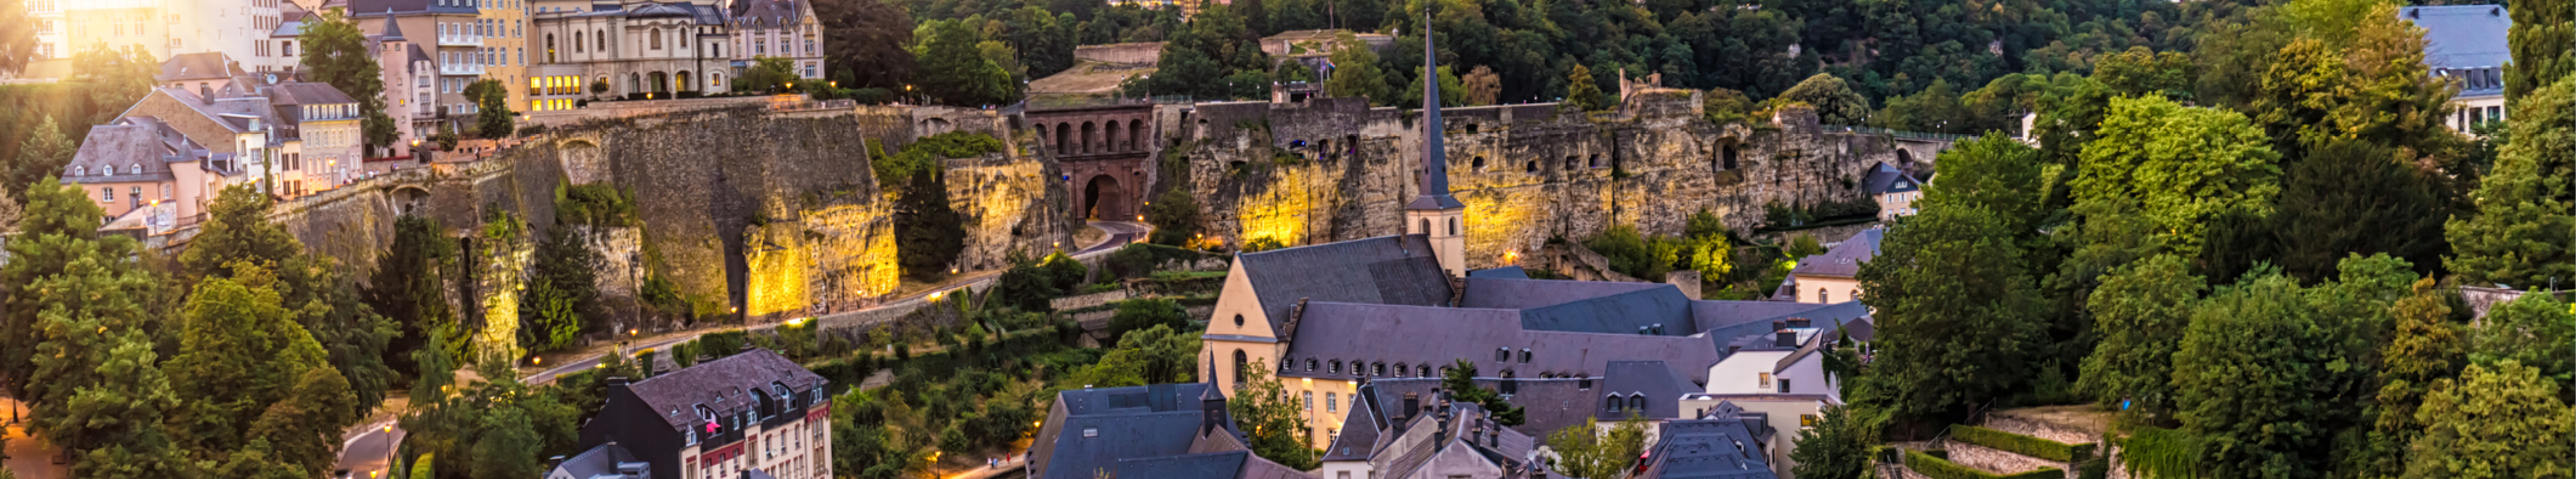 Luxembourg 1086x202